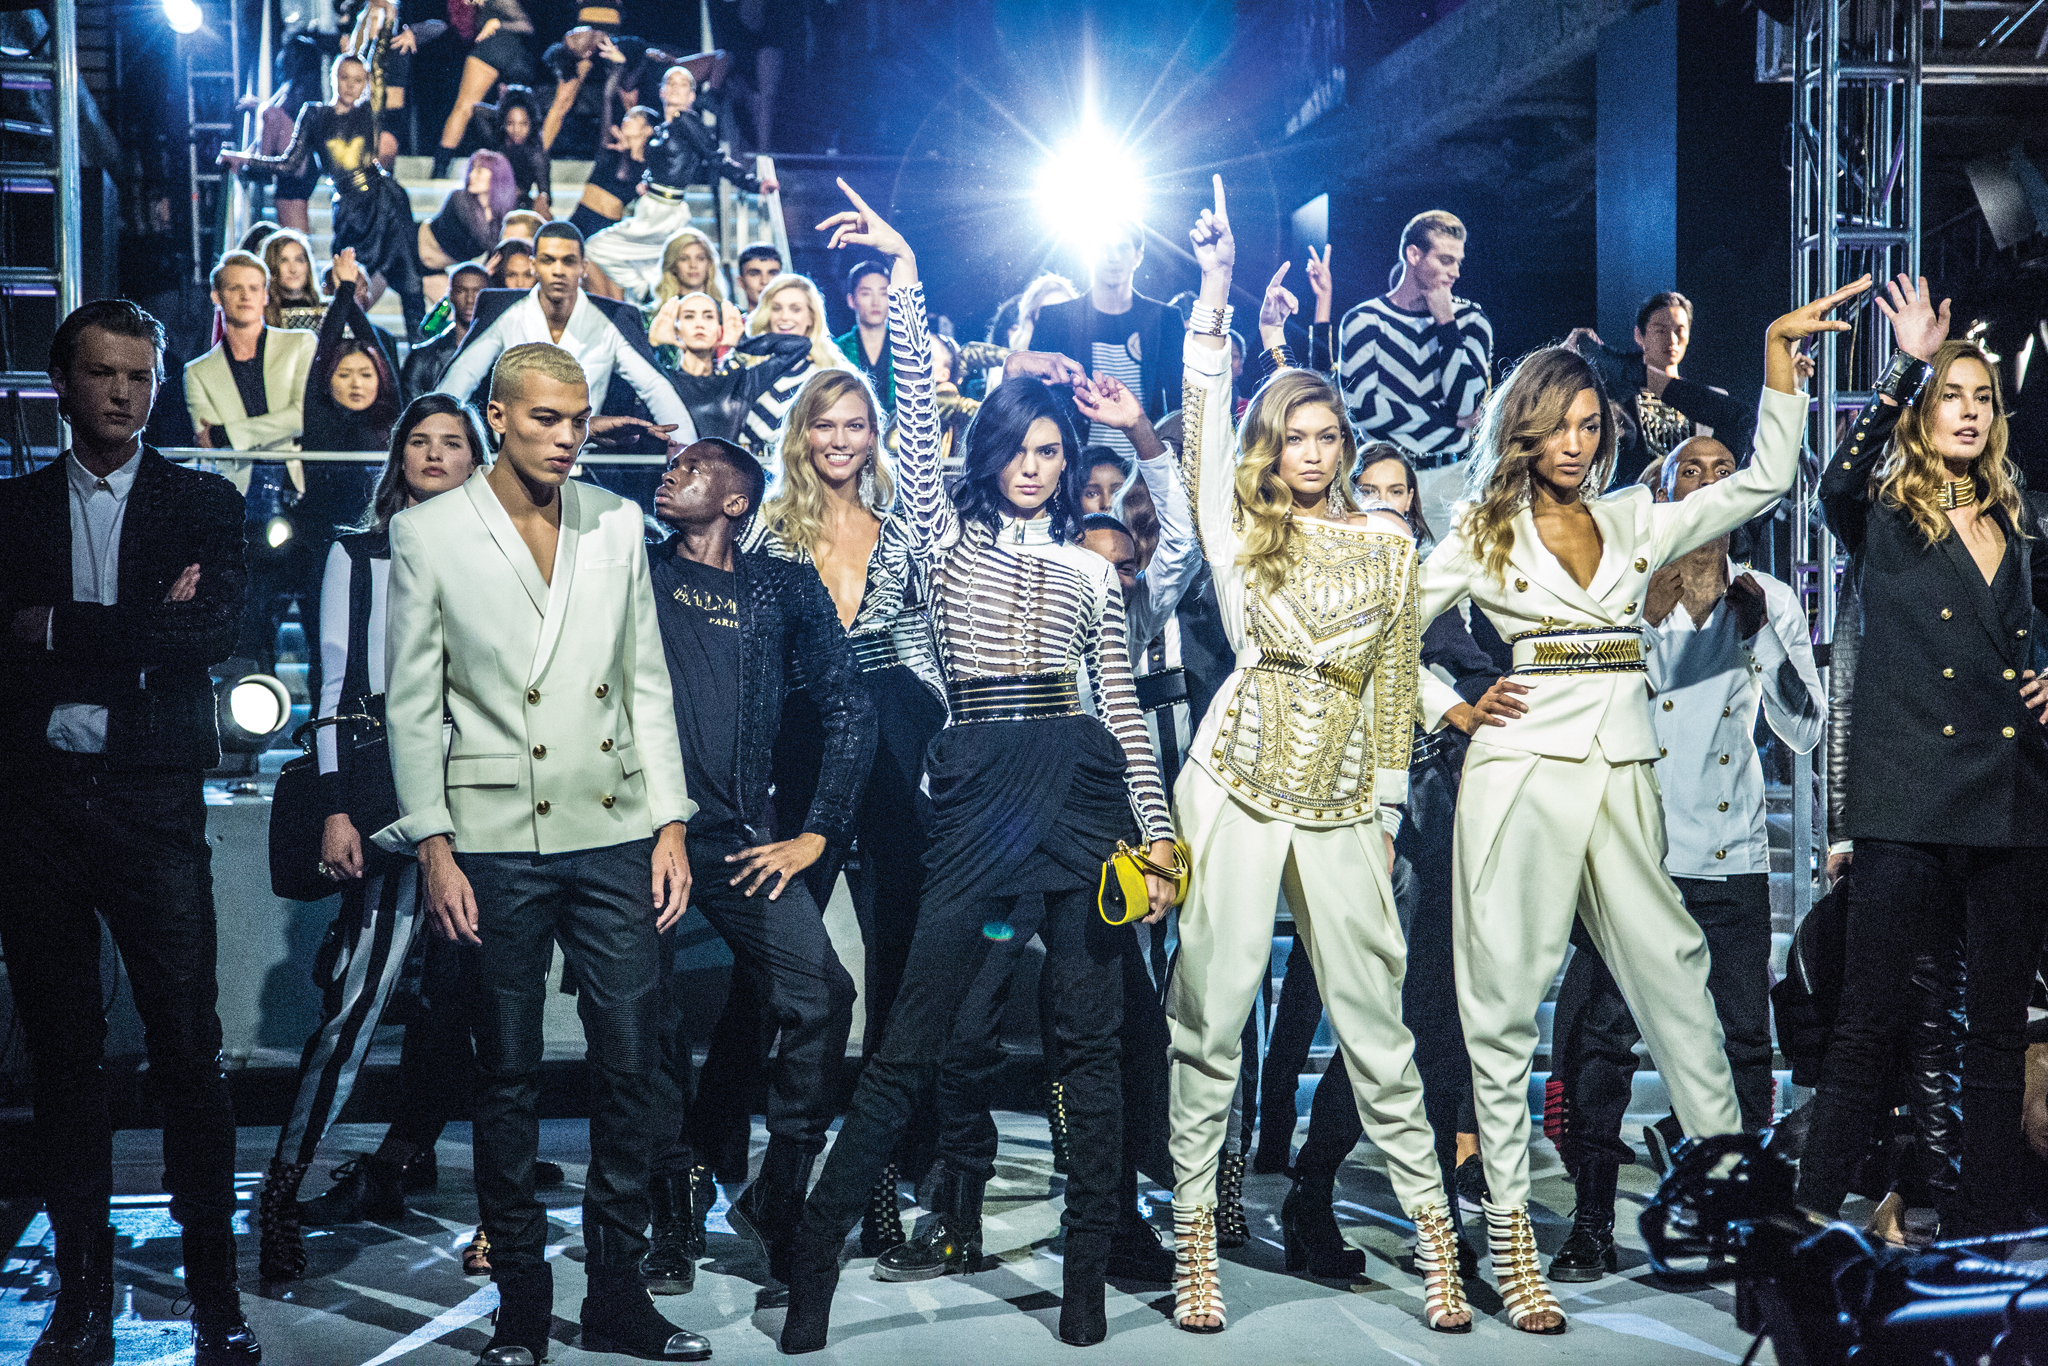 Karlie Kloss, Kendall Jenner and Gigi Hadid on the Balmain x H&M runway.